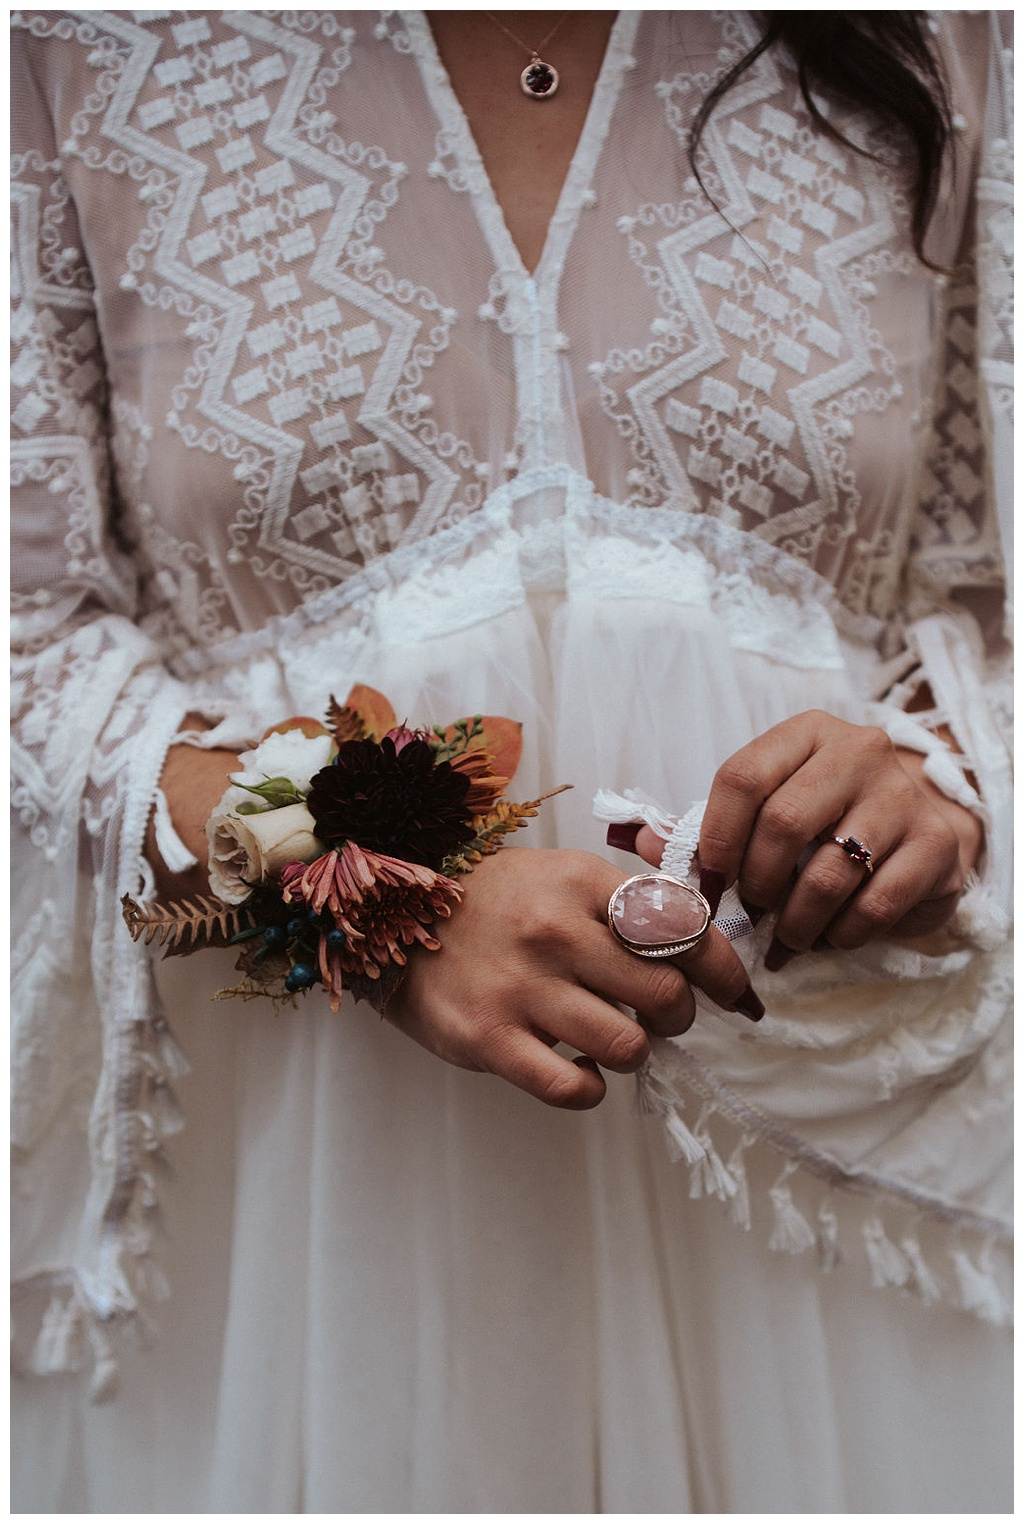 The bride with a fall flower cuff and a large rose quartz ring with her boho wedding dress